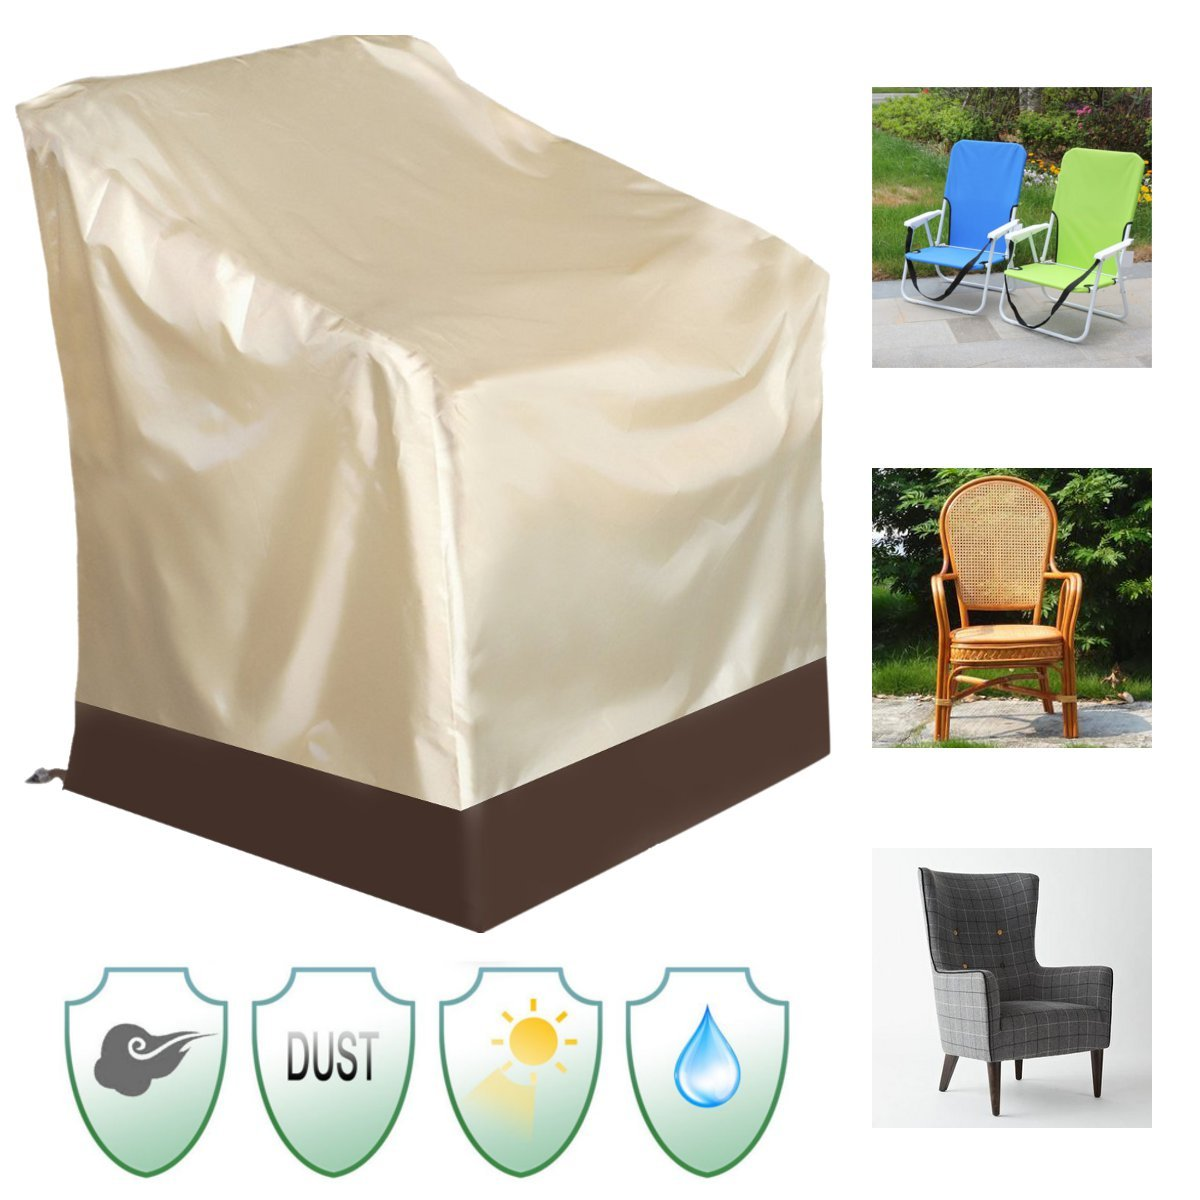 Thyway Patio Table Cover, 6.3828.7433.07inch Waterproof High Back Chair Cover Outdoor Patio Yard Furniture Protection